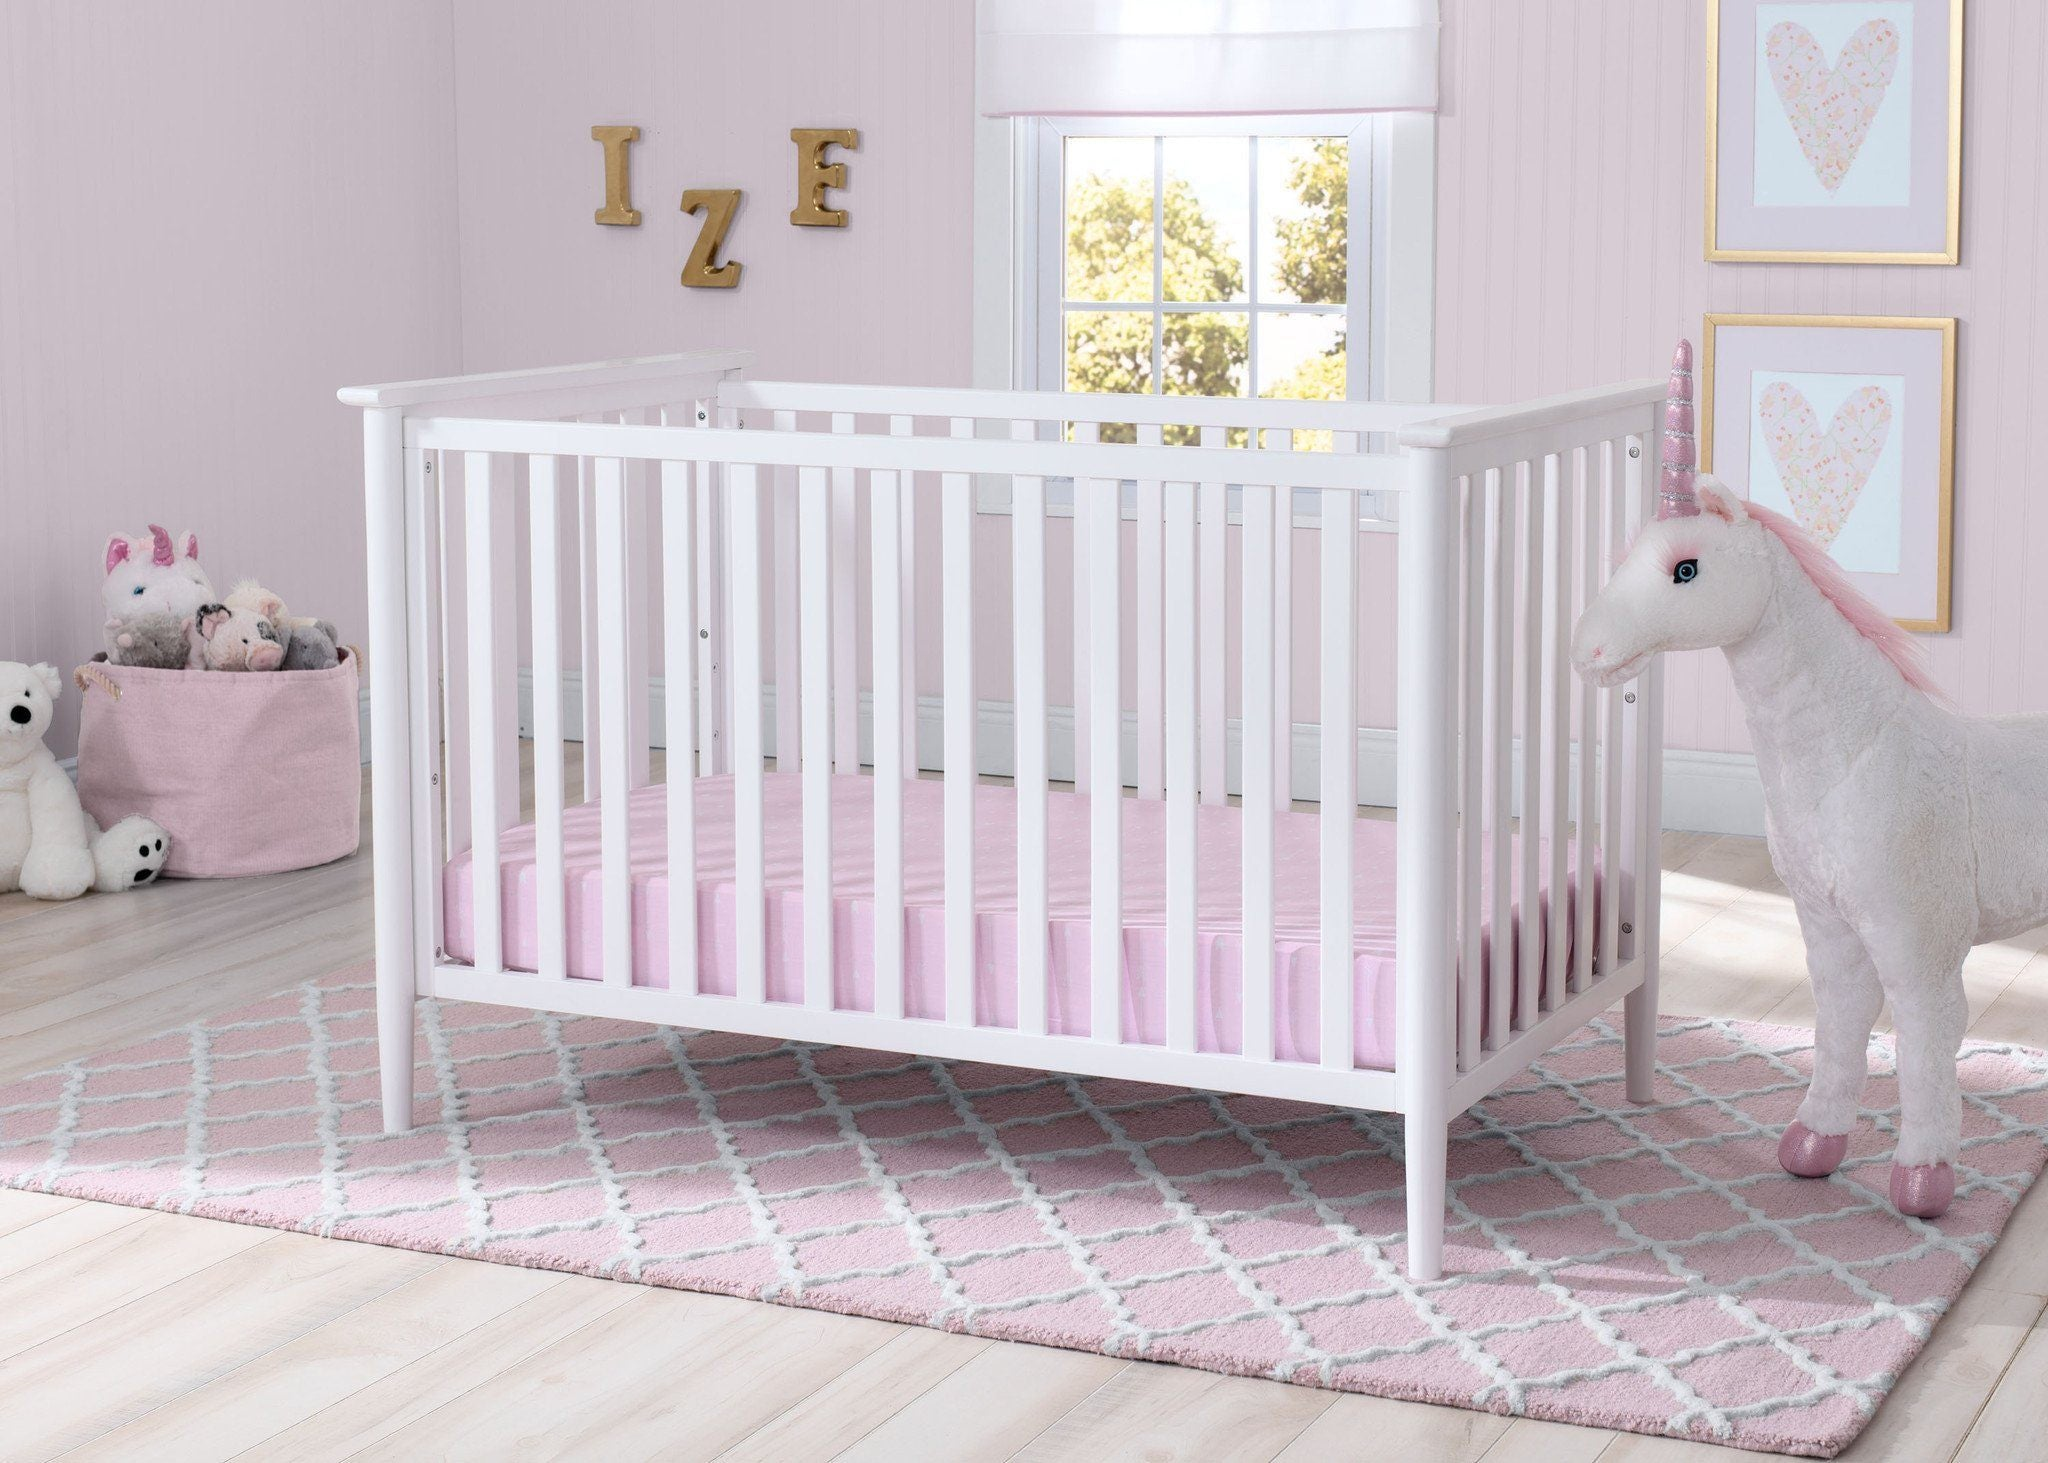 Delta Children Bianca White (130) Greyson 3-in-1 Crib, Hangtag, a0a